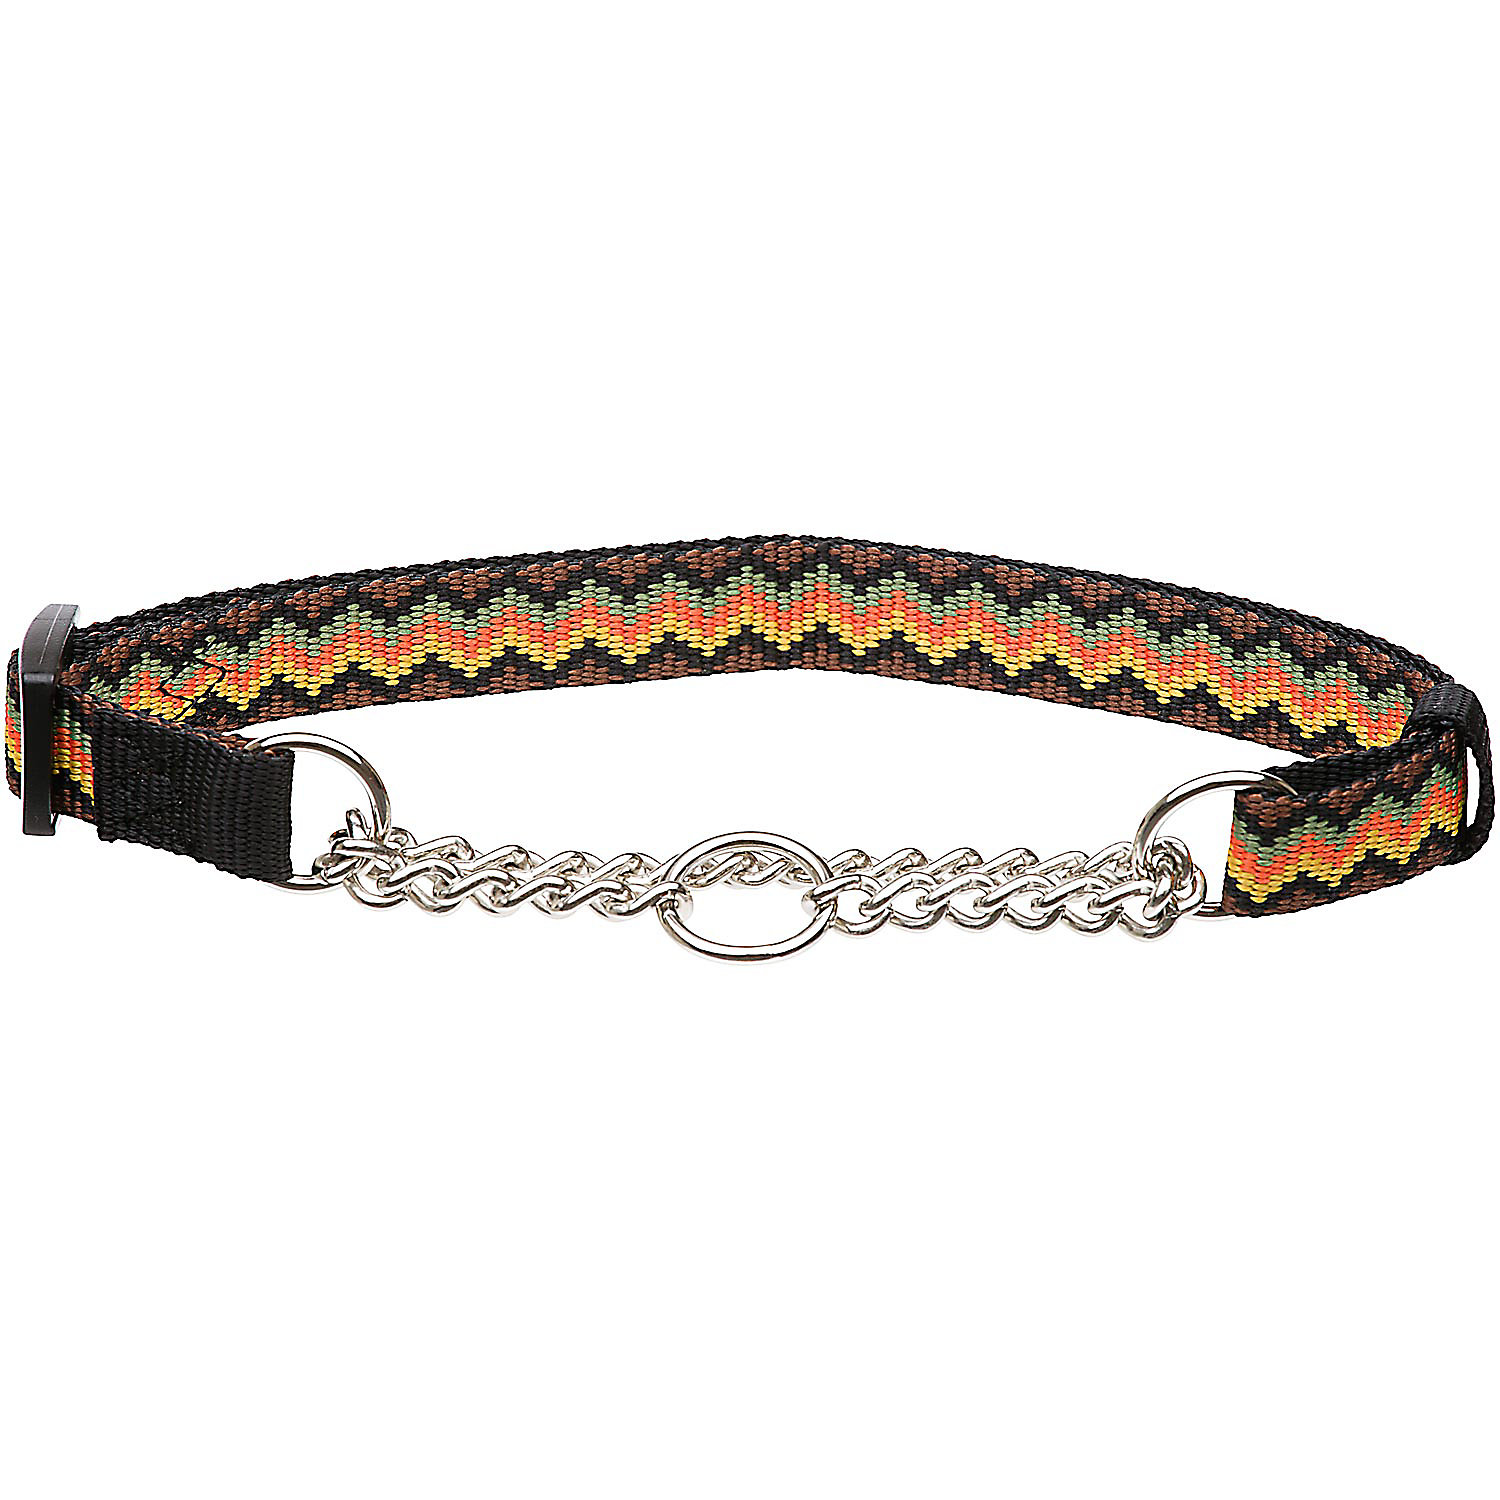 What to buy for your new puppy - Hamilton Zigzag Pattern Martingale Dog Collar